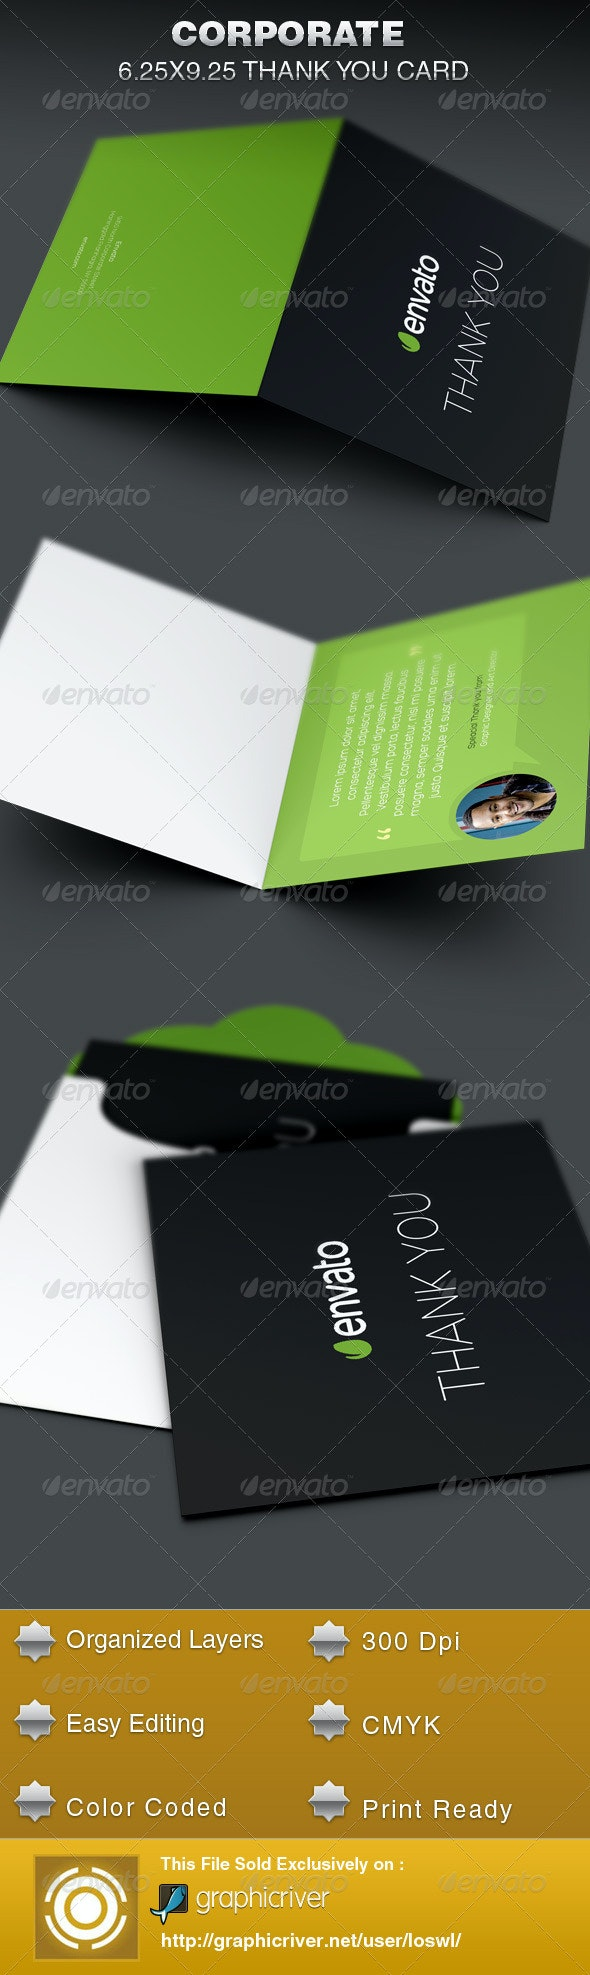 Corporate Thank You Card Template - Cards & Invites Print Templates